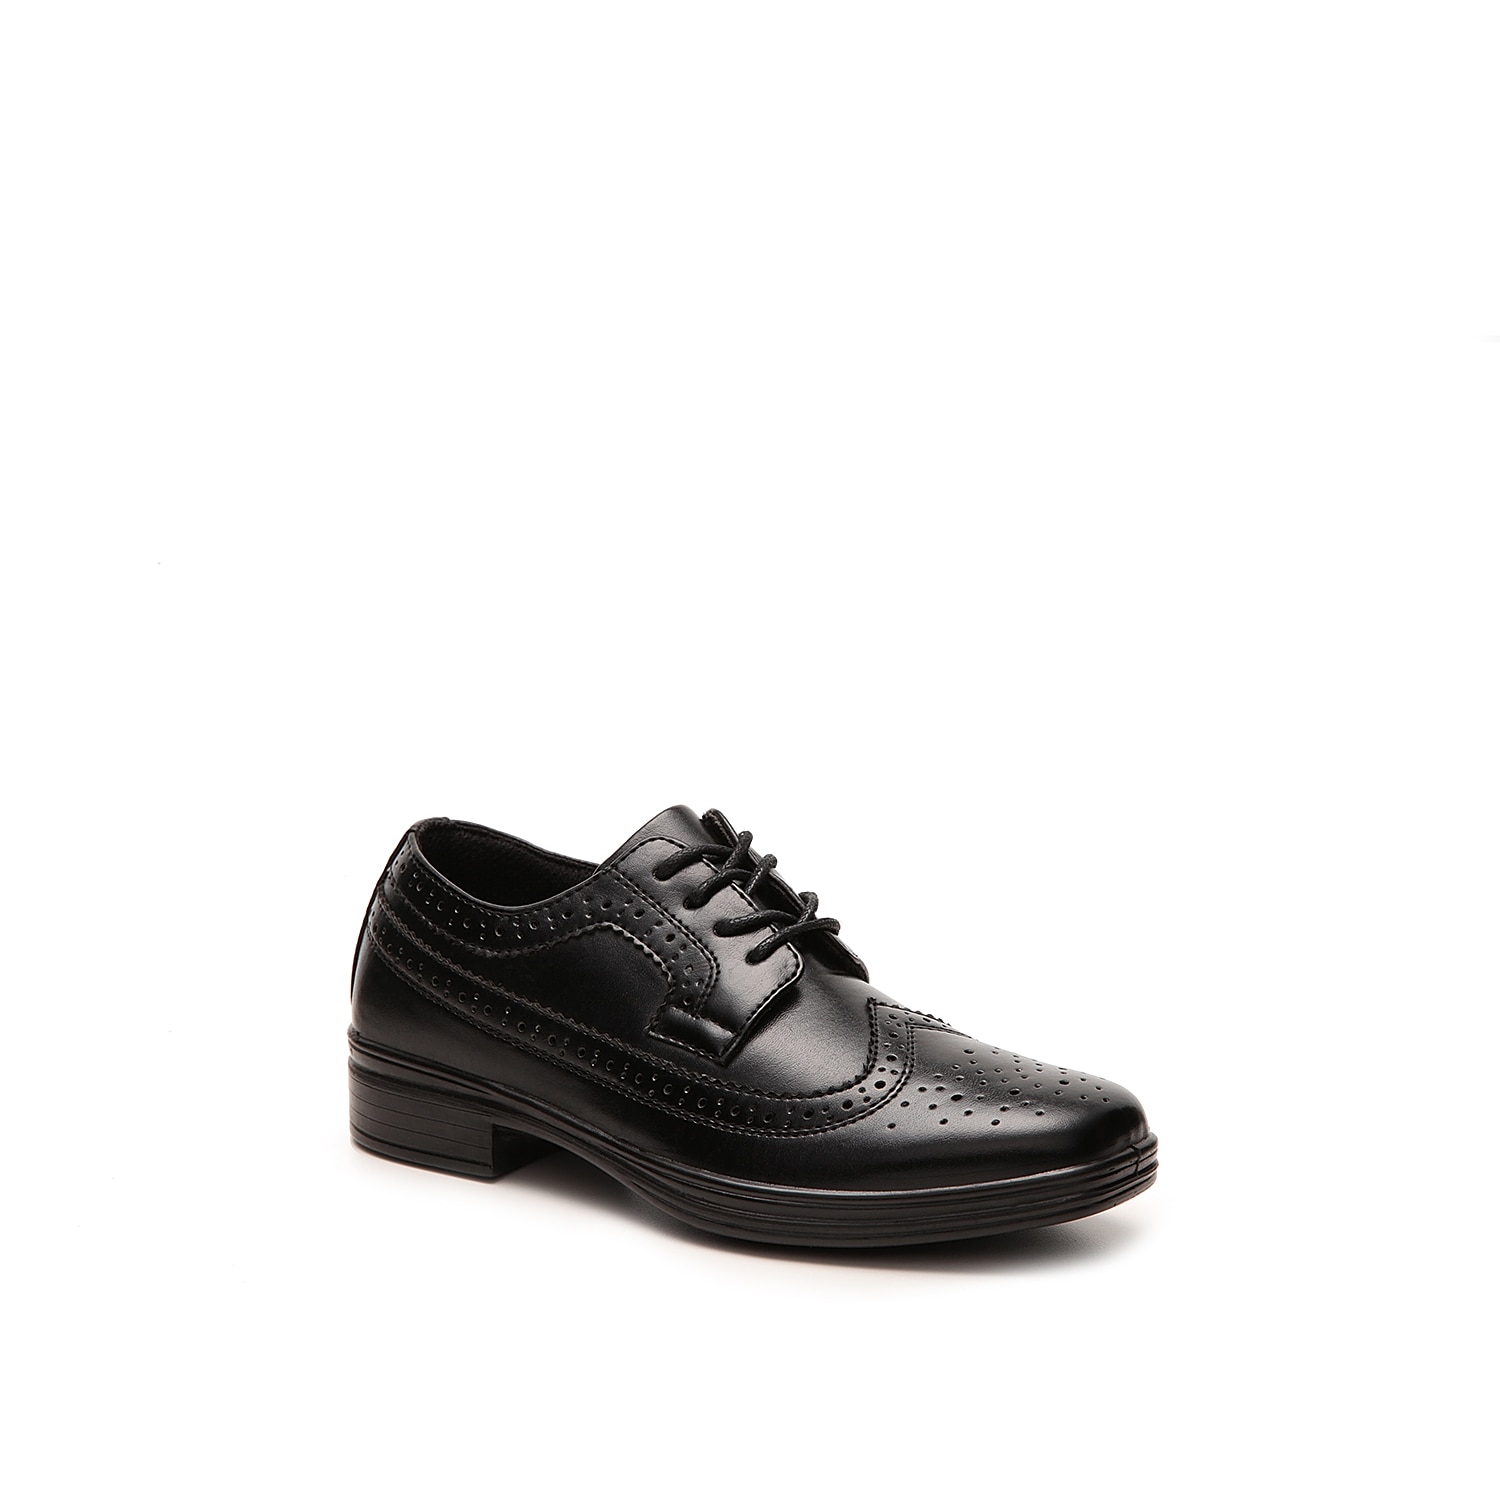 Bring out his dapper side with the Ace wingtip oxford. These kids dress shoes will surely add that old charm to his outfits!Not sure which size to order? Clickhereto check out our Kids' Measuring Guide! For more helpful tips and sizing FAQs, clickhere.